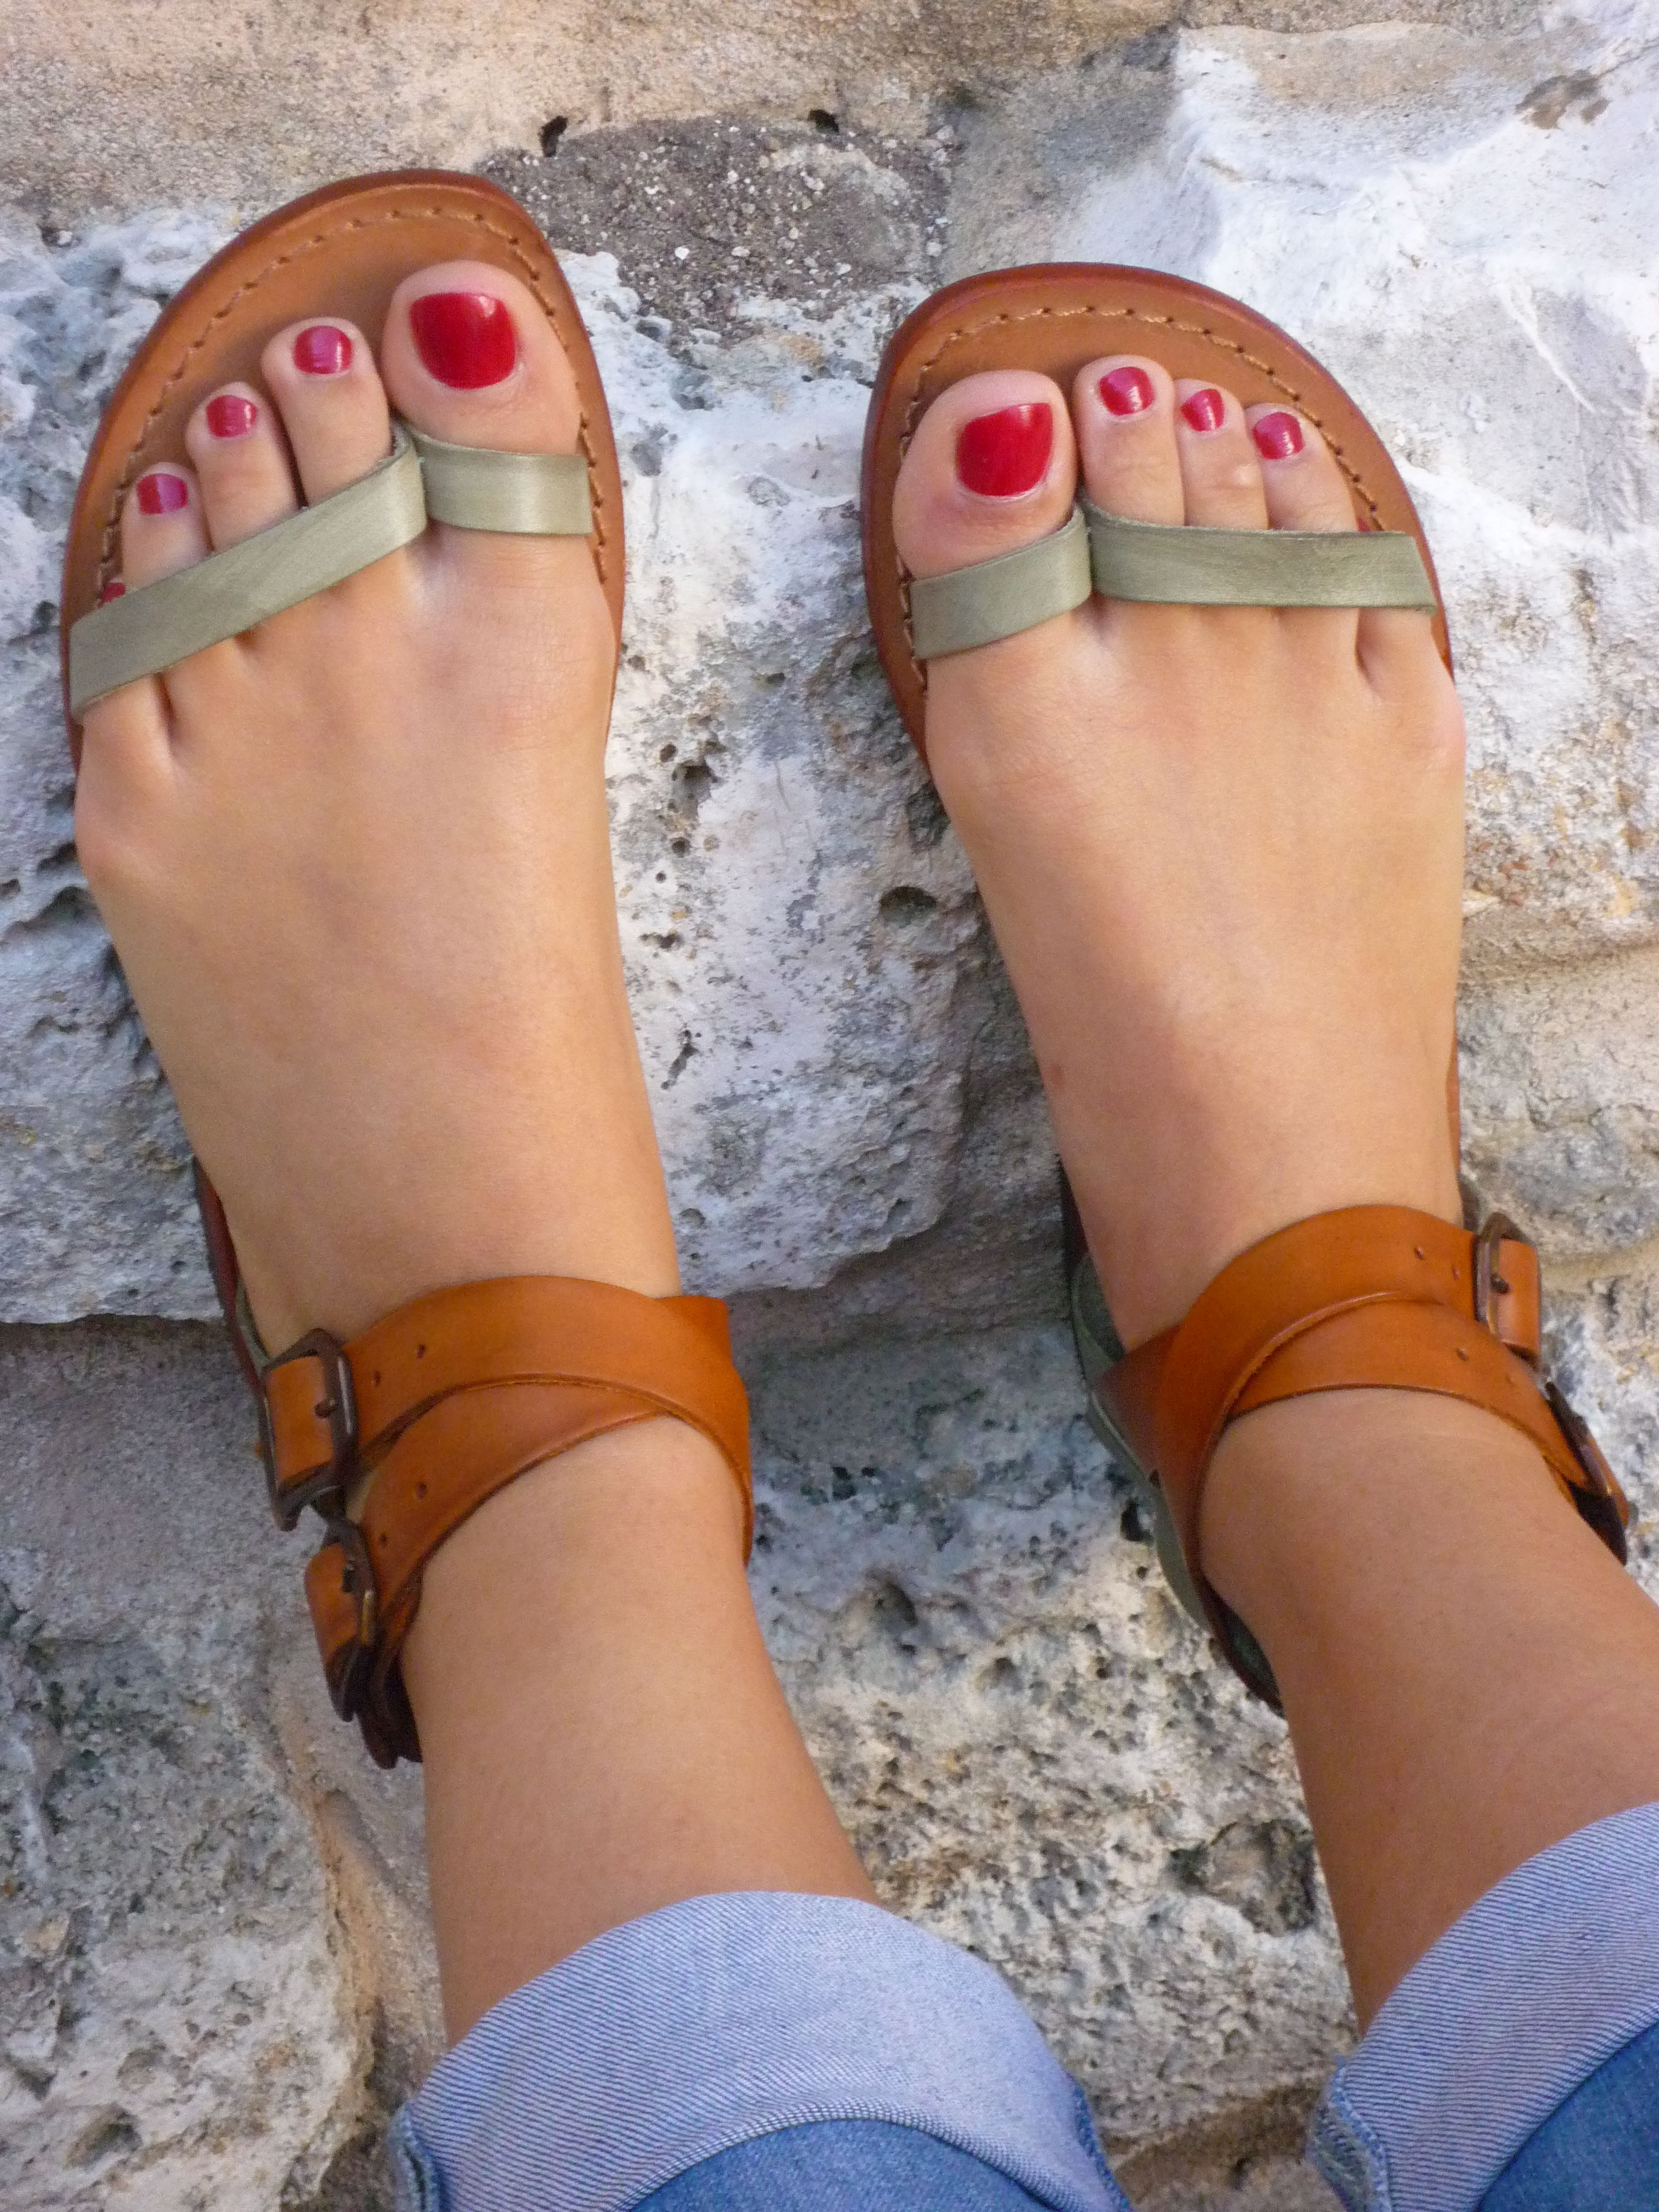 6dbeb4da9d0eb8 Shoes - Sandals - leather - handmade - Italian - Summer - Women s -  www.sandalishop.it  -)